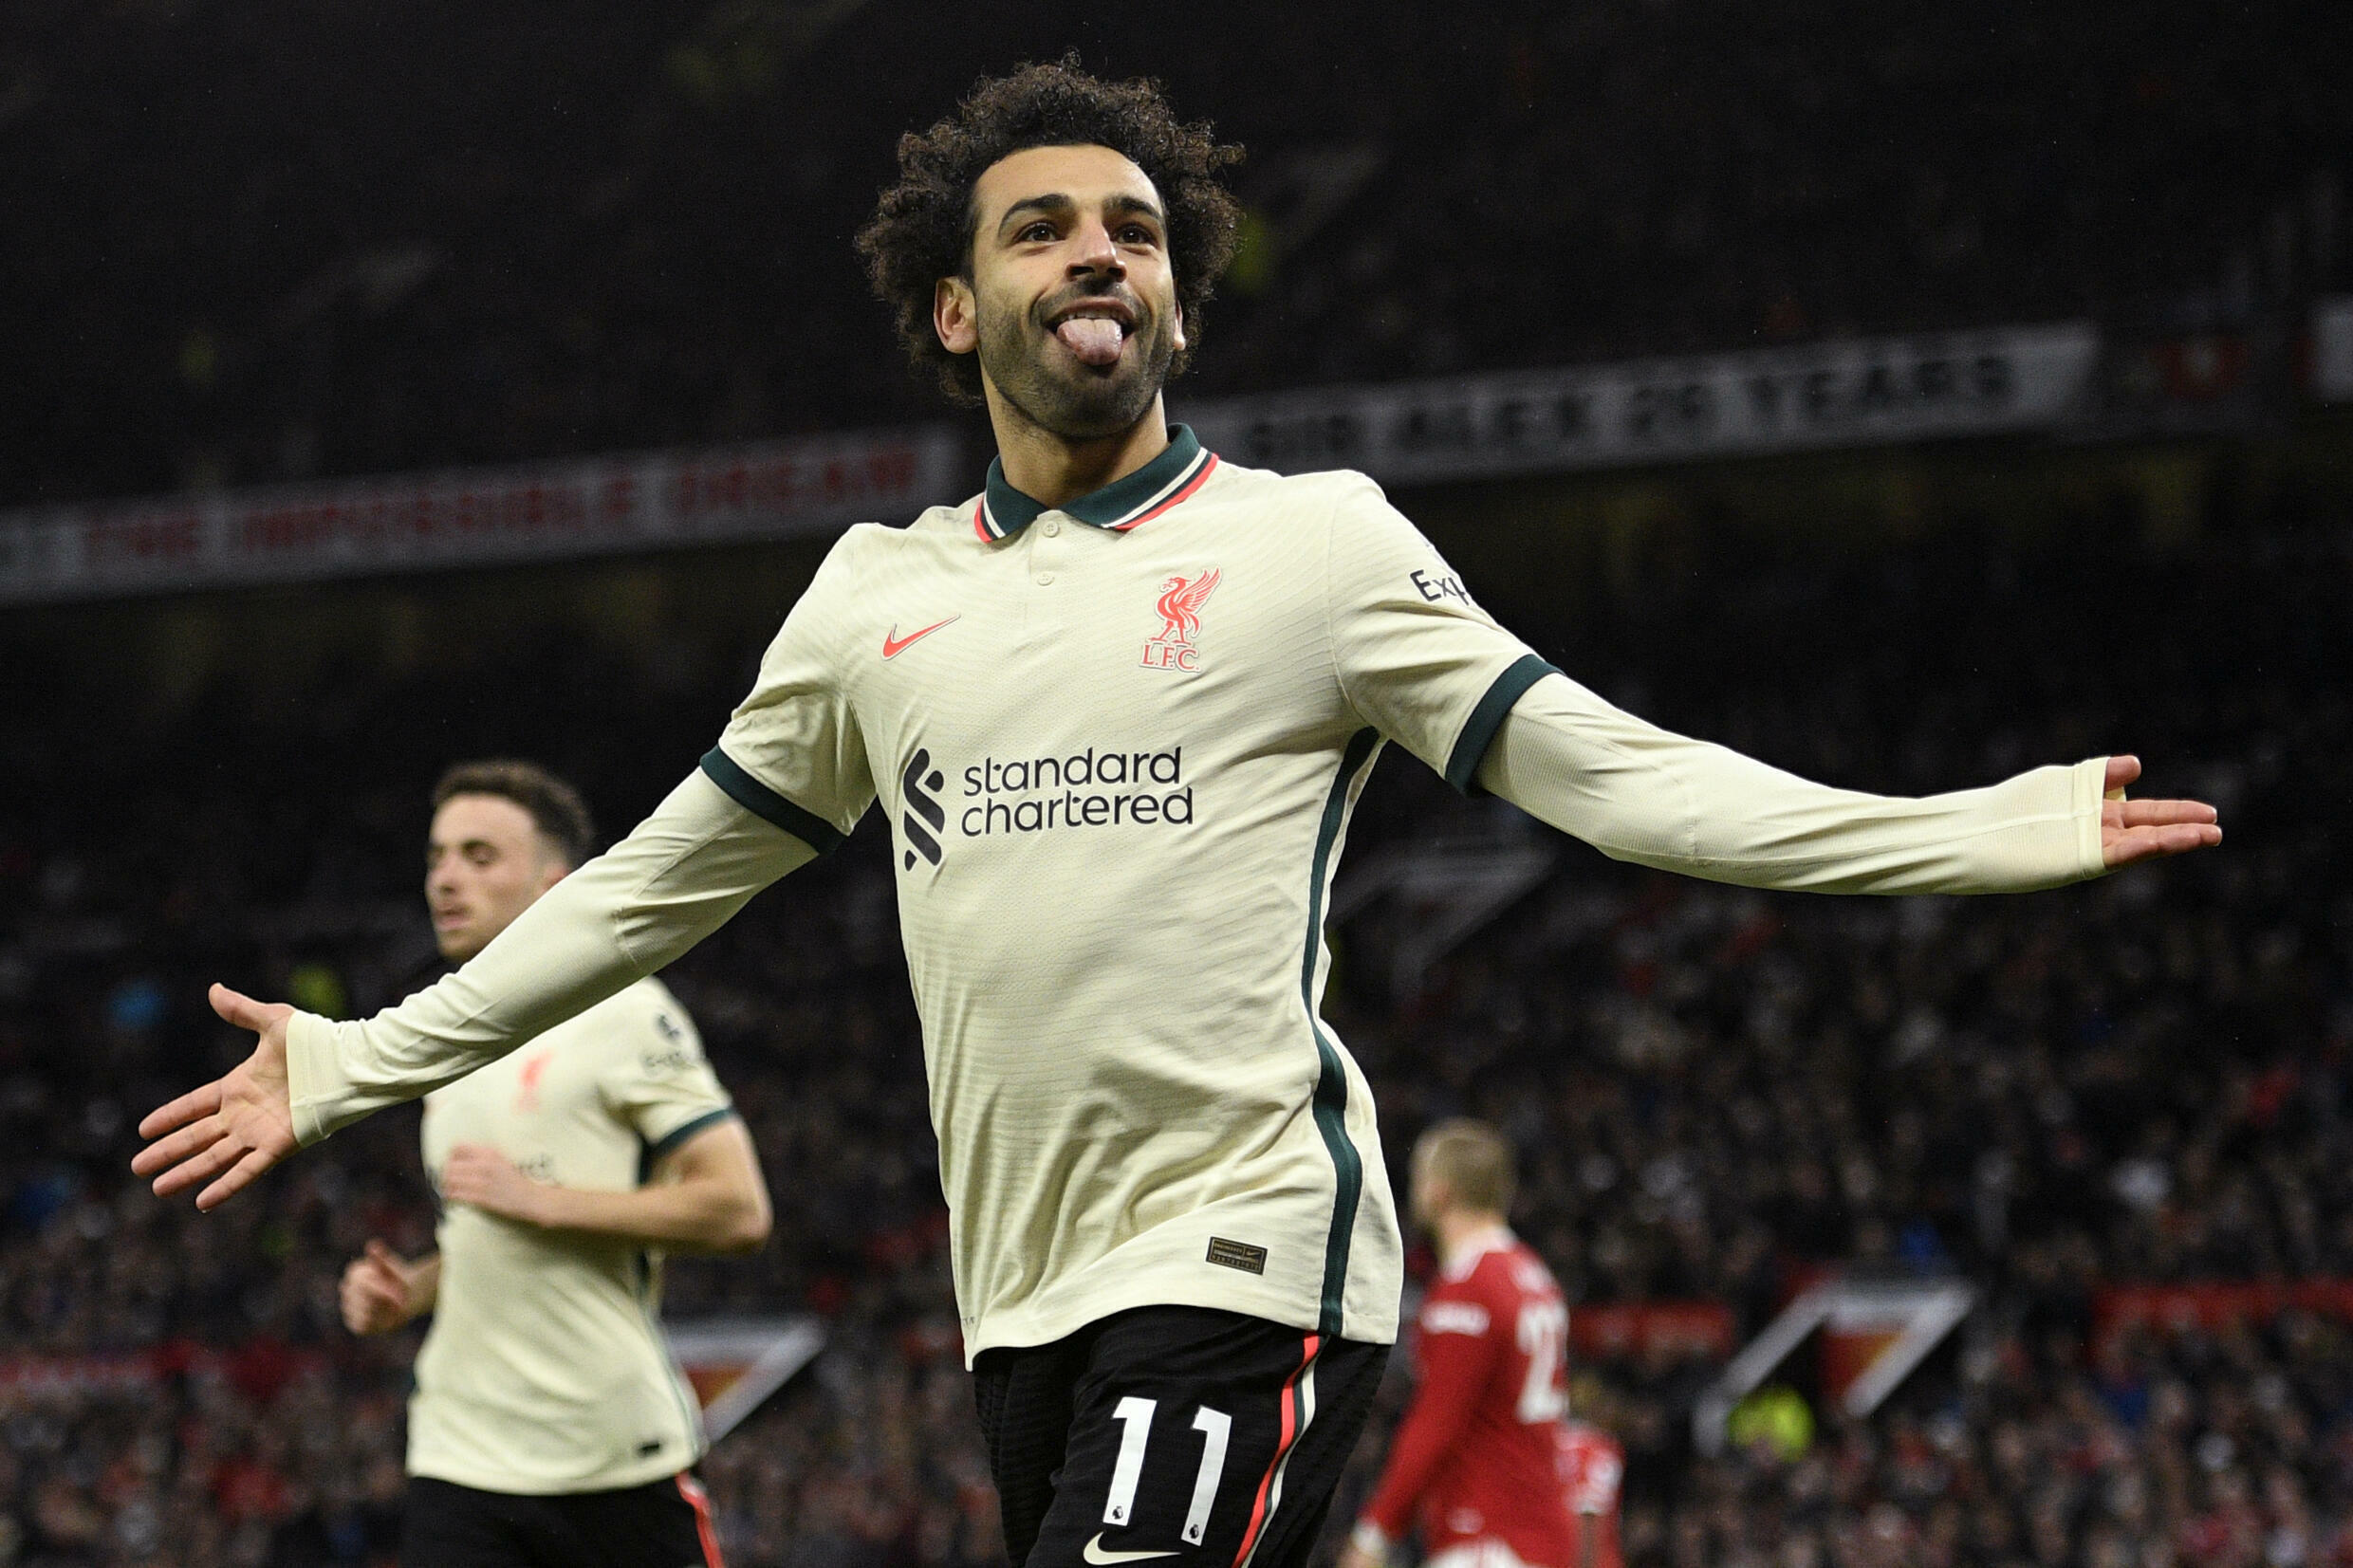 Egyptian King: Mohamed Salah's hat-trick against Manchester United made him the top-scoring African player in Premier League history